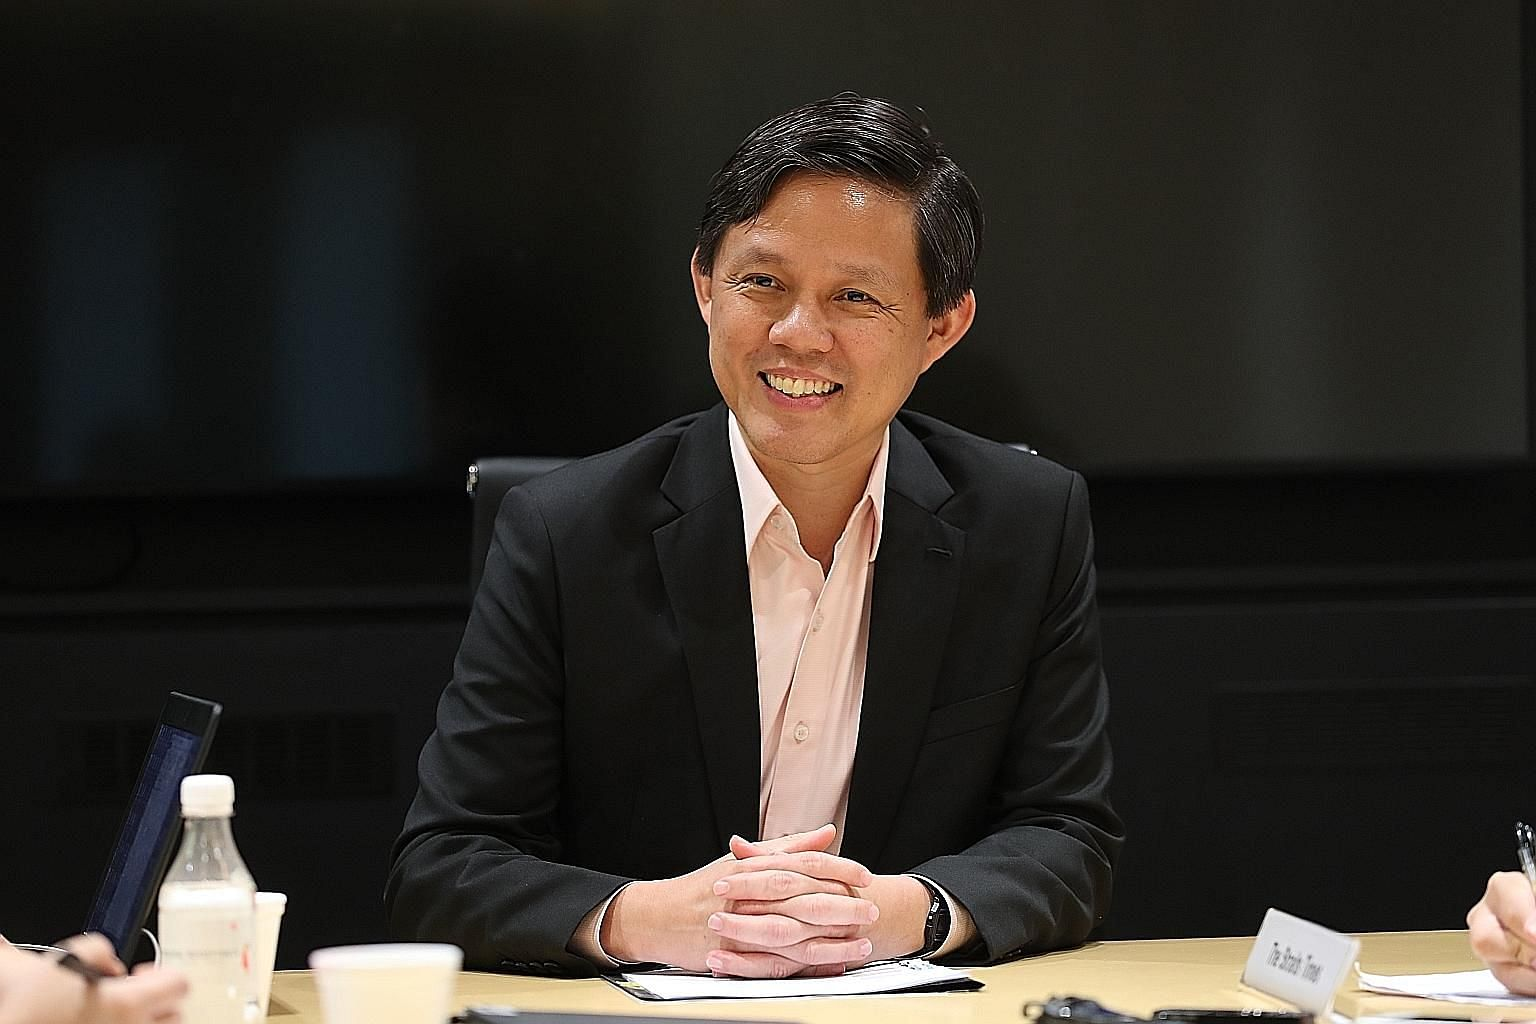 Singapore must constantly refresh job and tourism offerings here in order to prevent wage stagnation, said Trade and Industry Minister Chan Chun Sing.